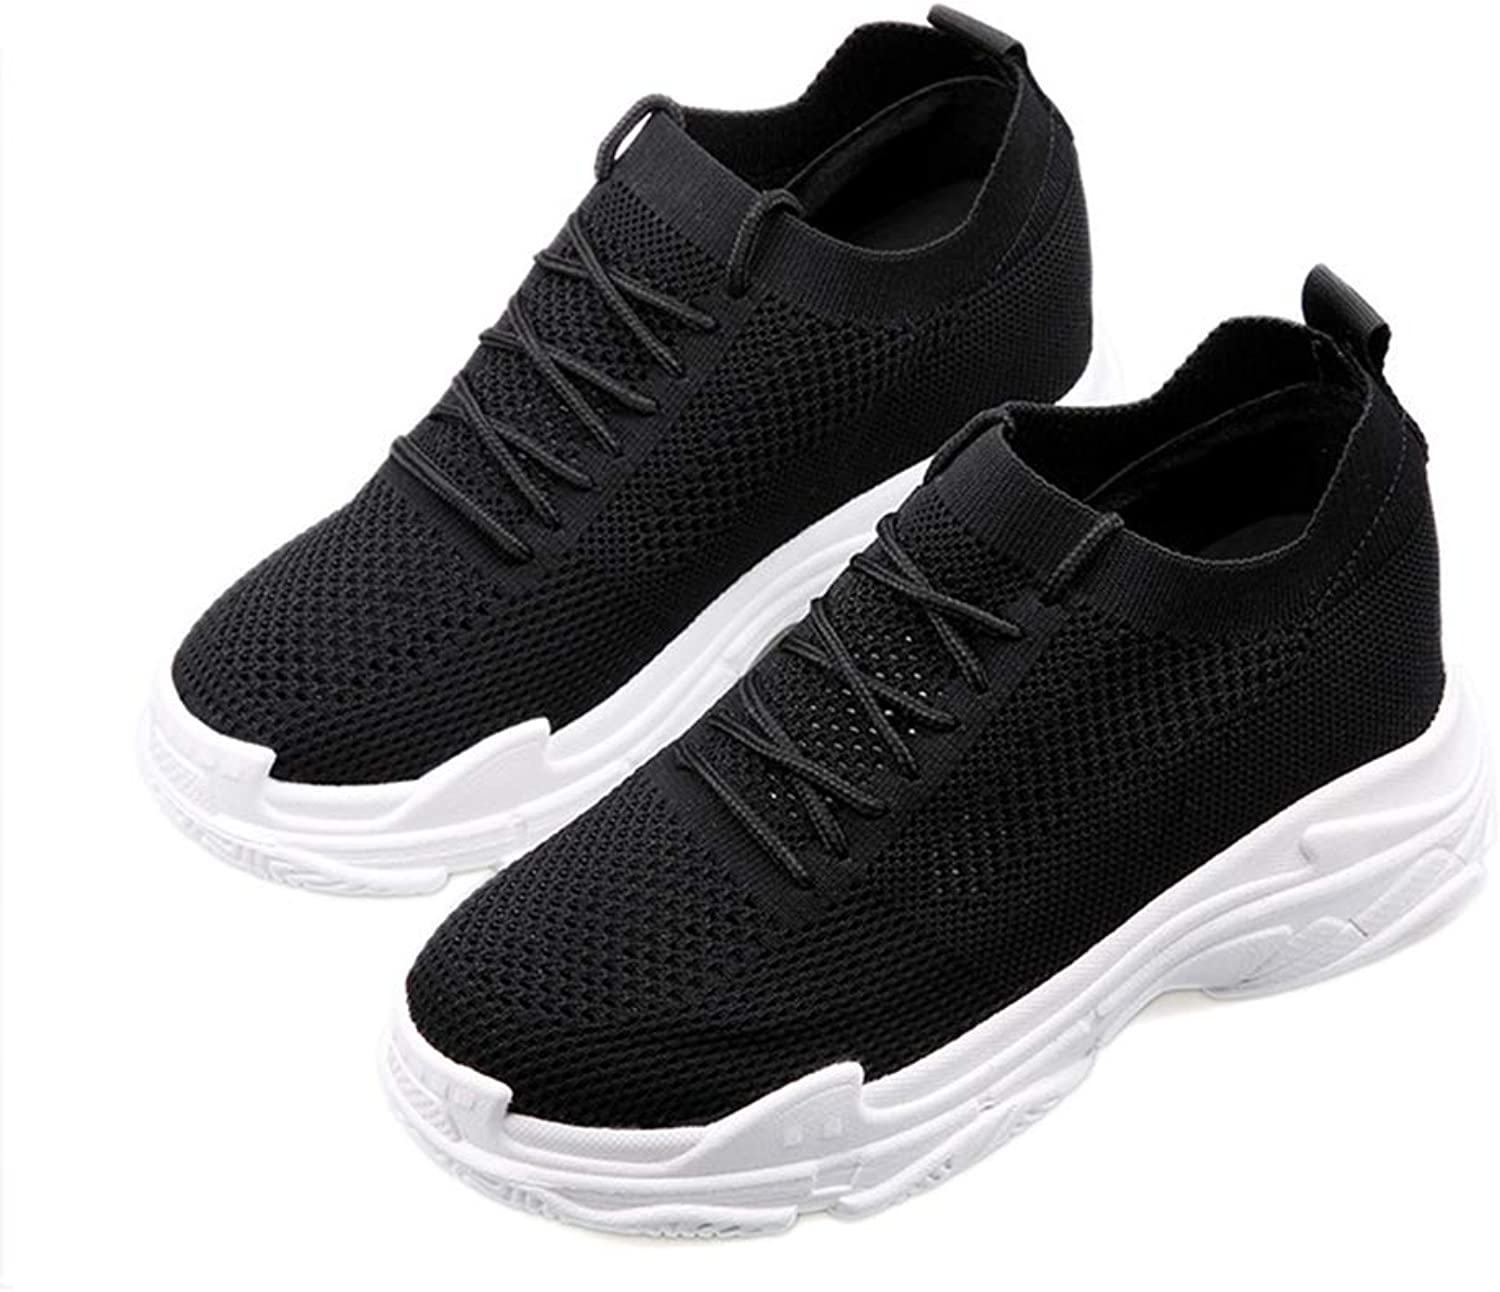 T-JULY Womens Hollow Out Air Mesh shoes Platform Sneakers for Women Black Tenis Feminino Casual Wedges shoes for Women